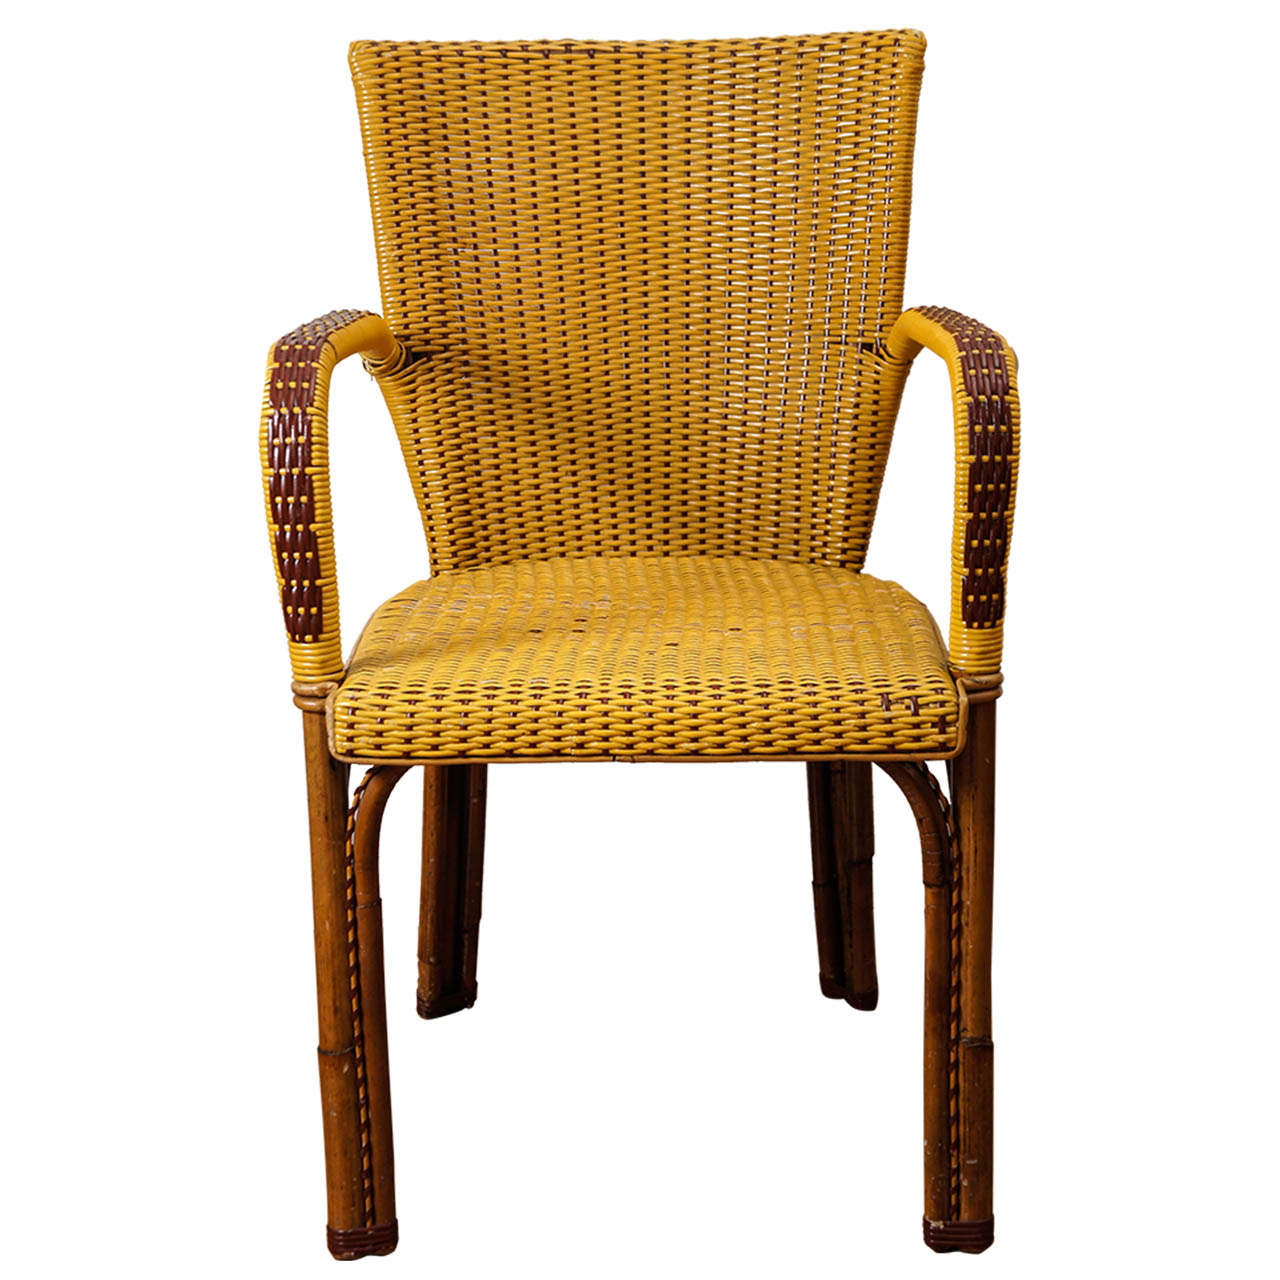 French Wicker Bistro Chairs For Sale